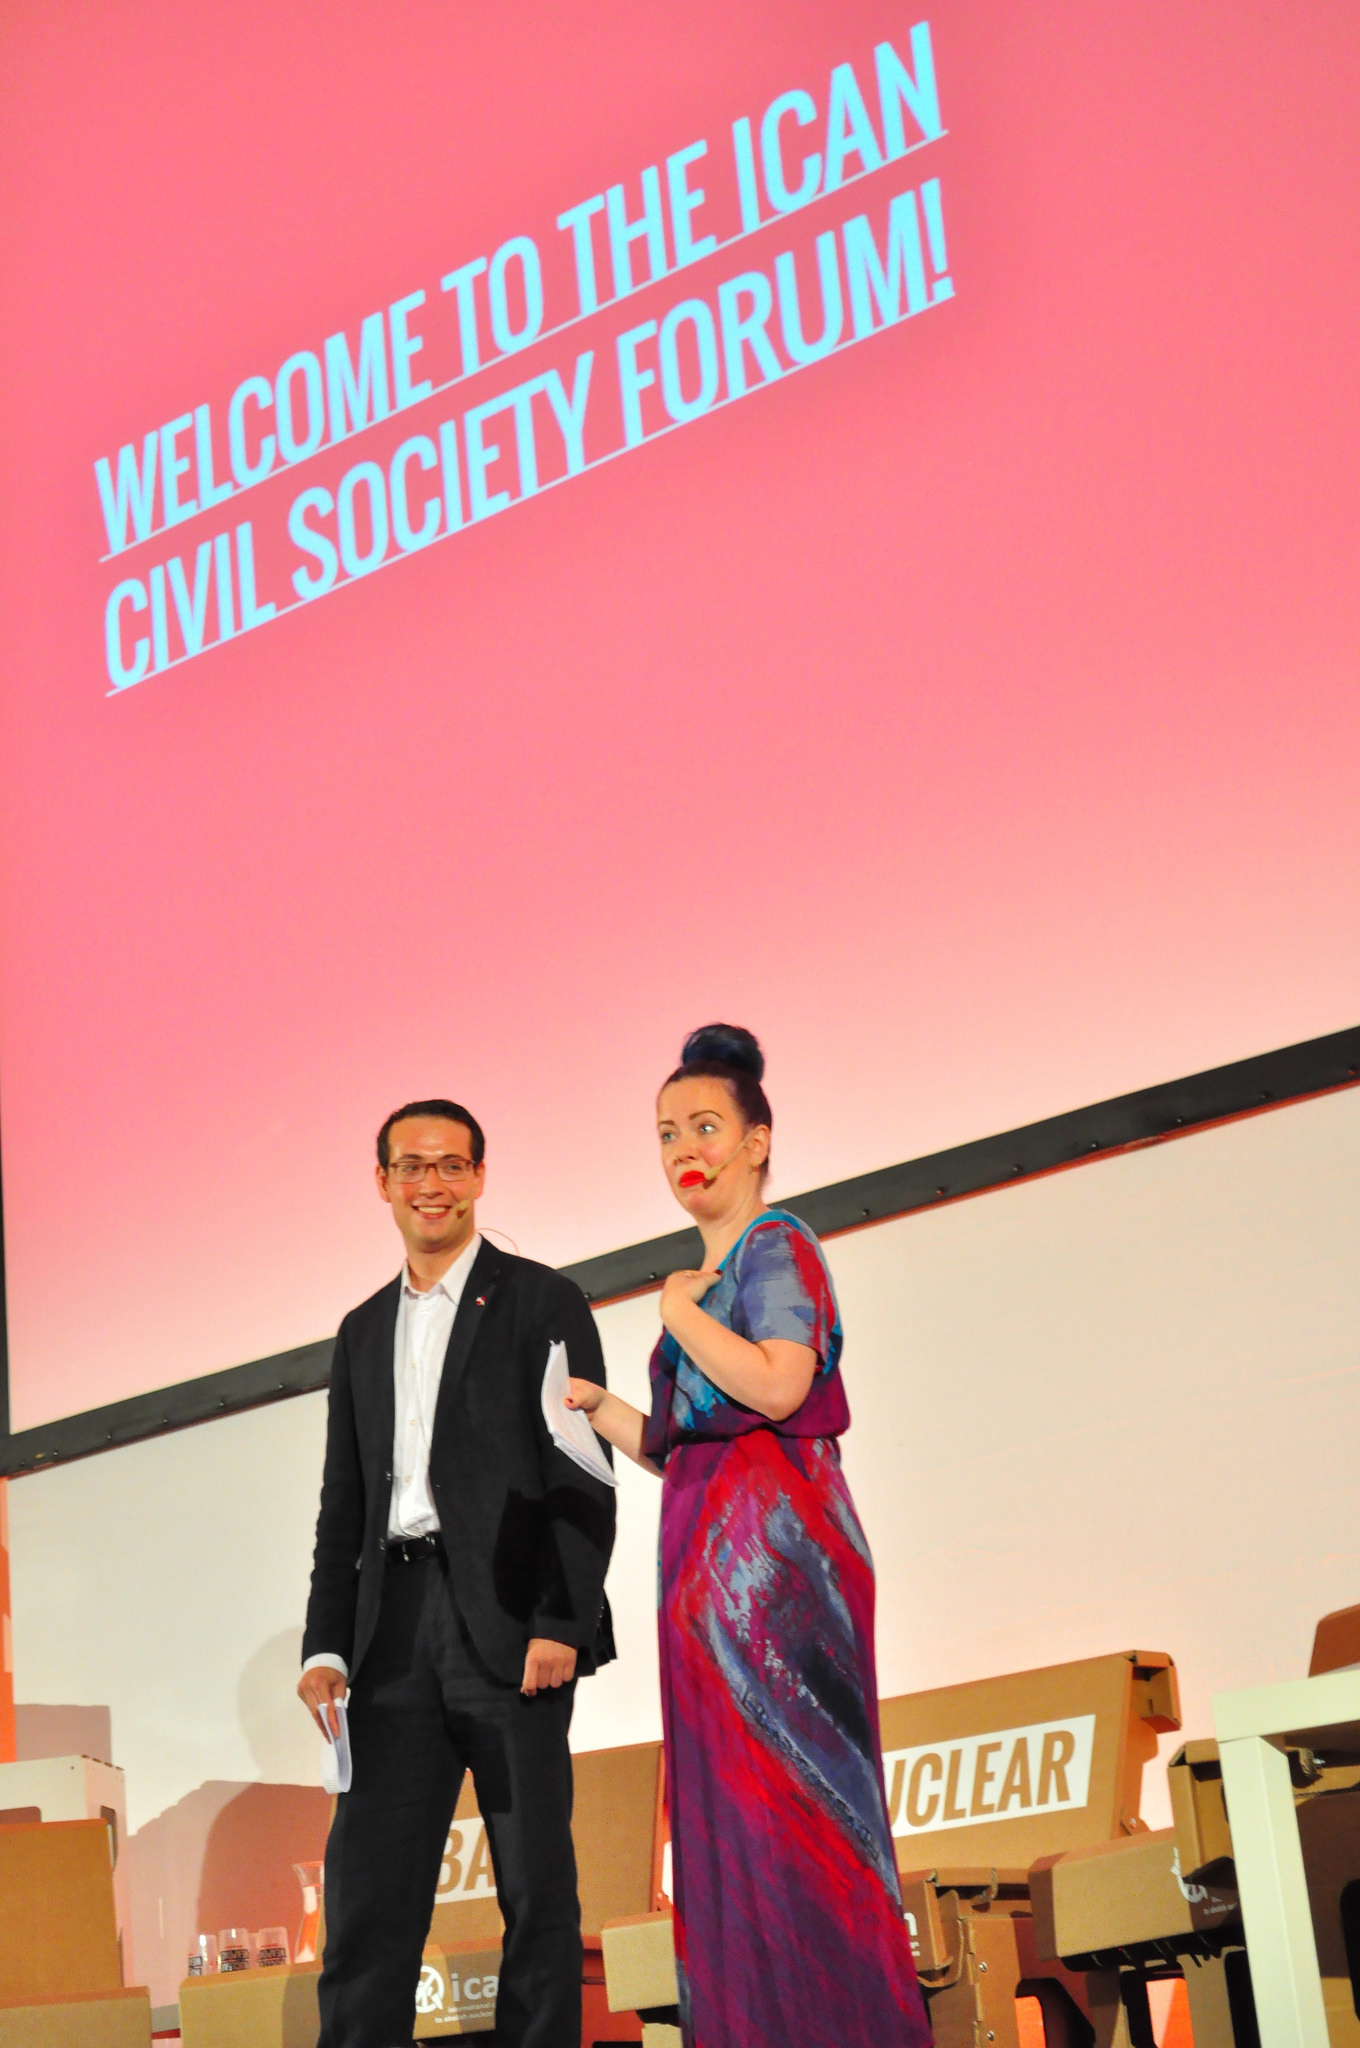 ICAN civil  society forum